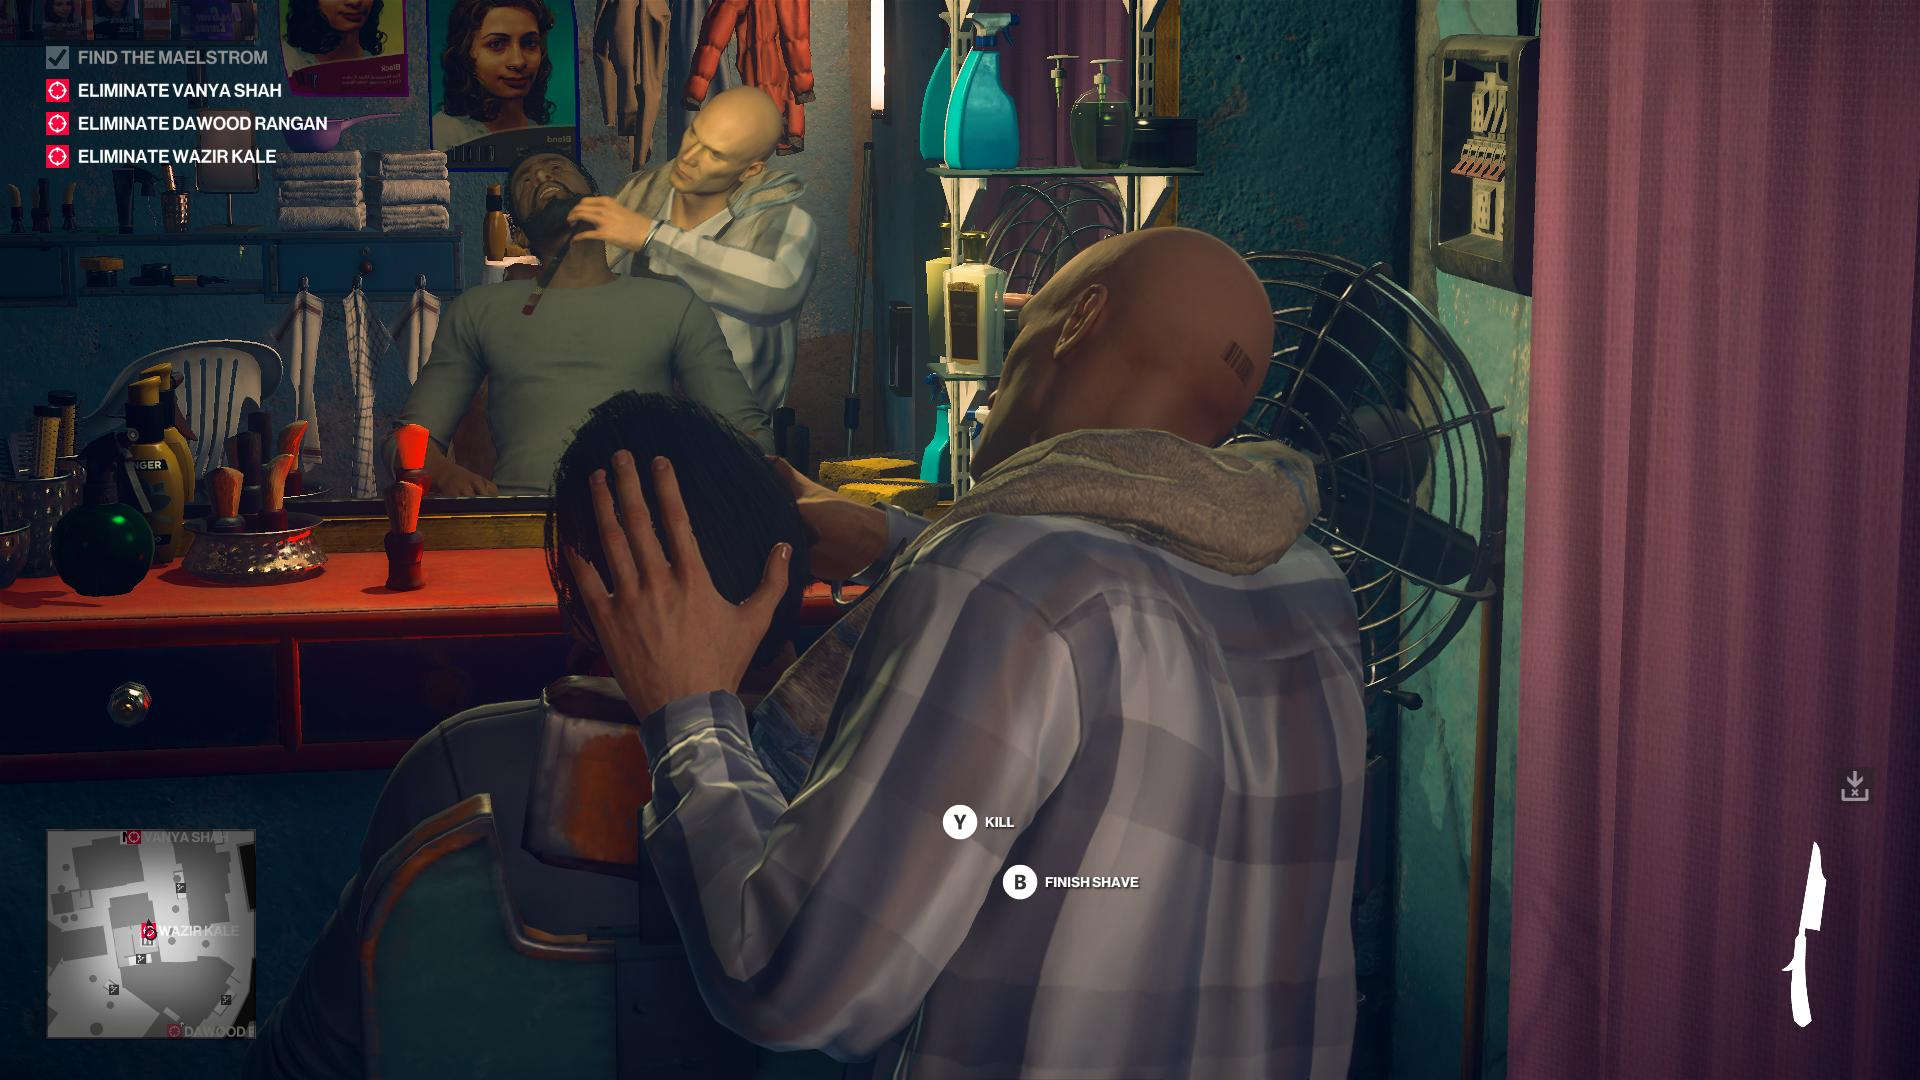 Agent 47 disguised as a barber, giving a man a very close shave. He has the option to make it too close.